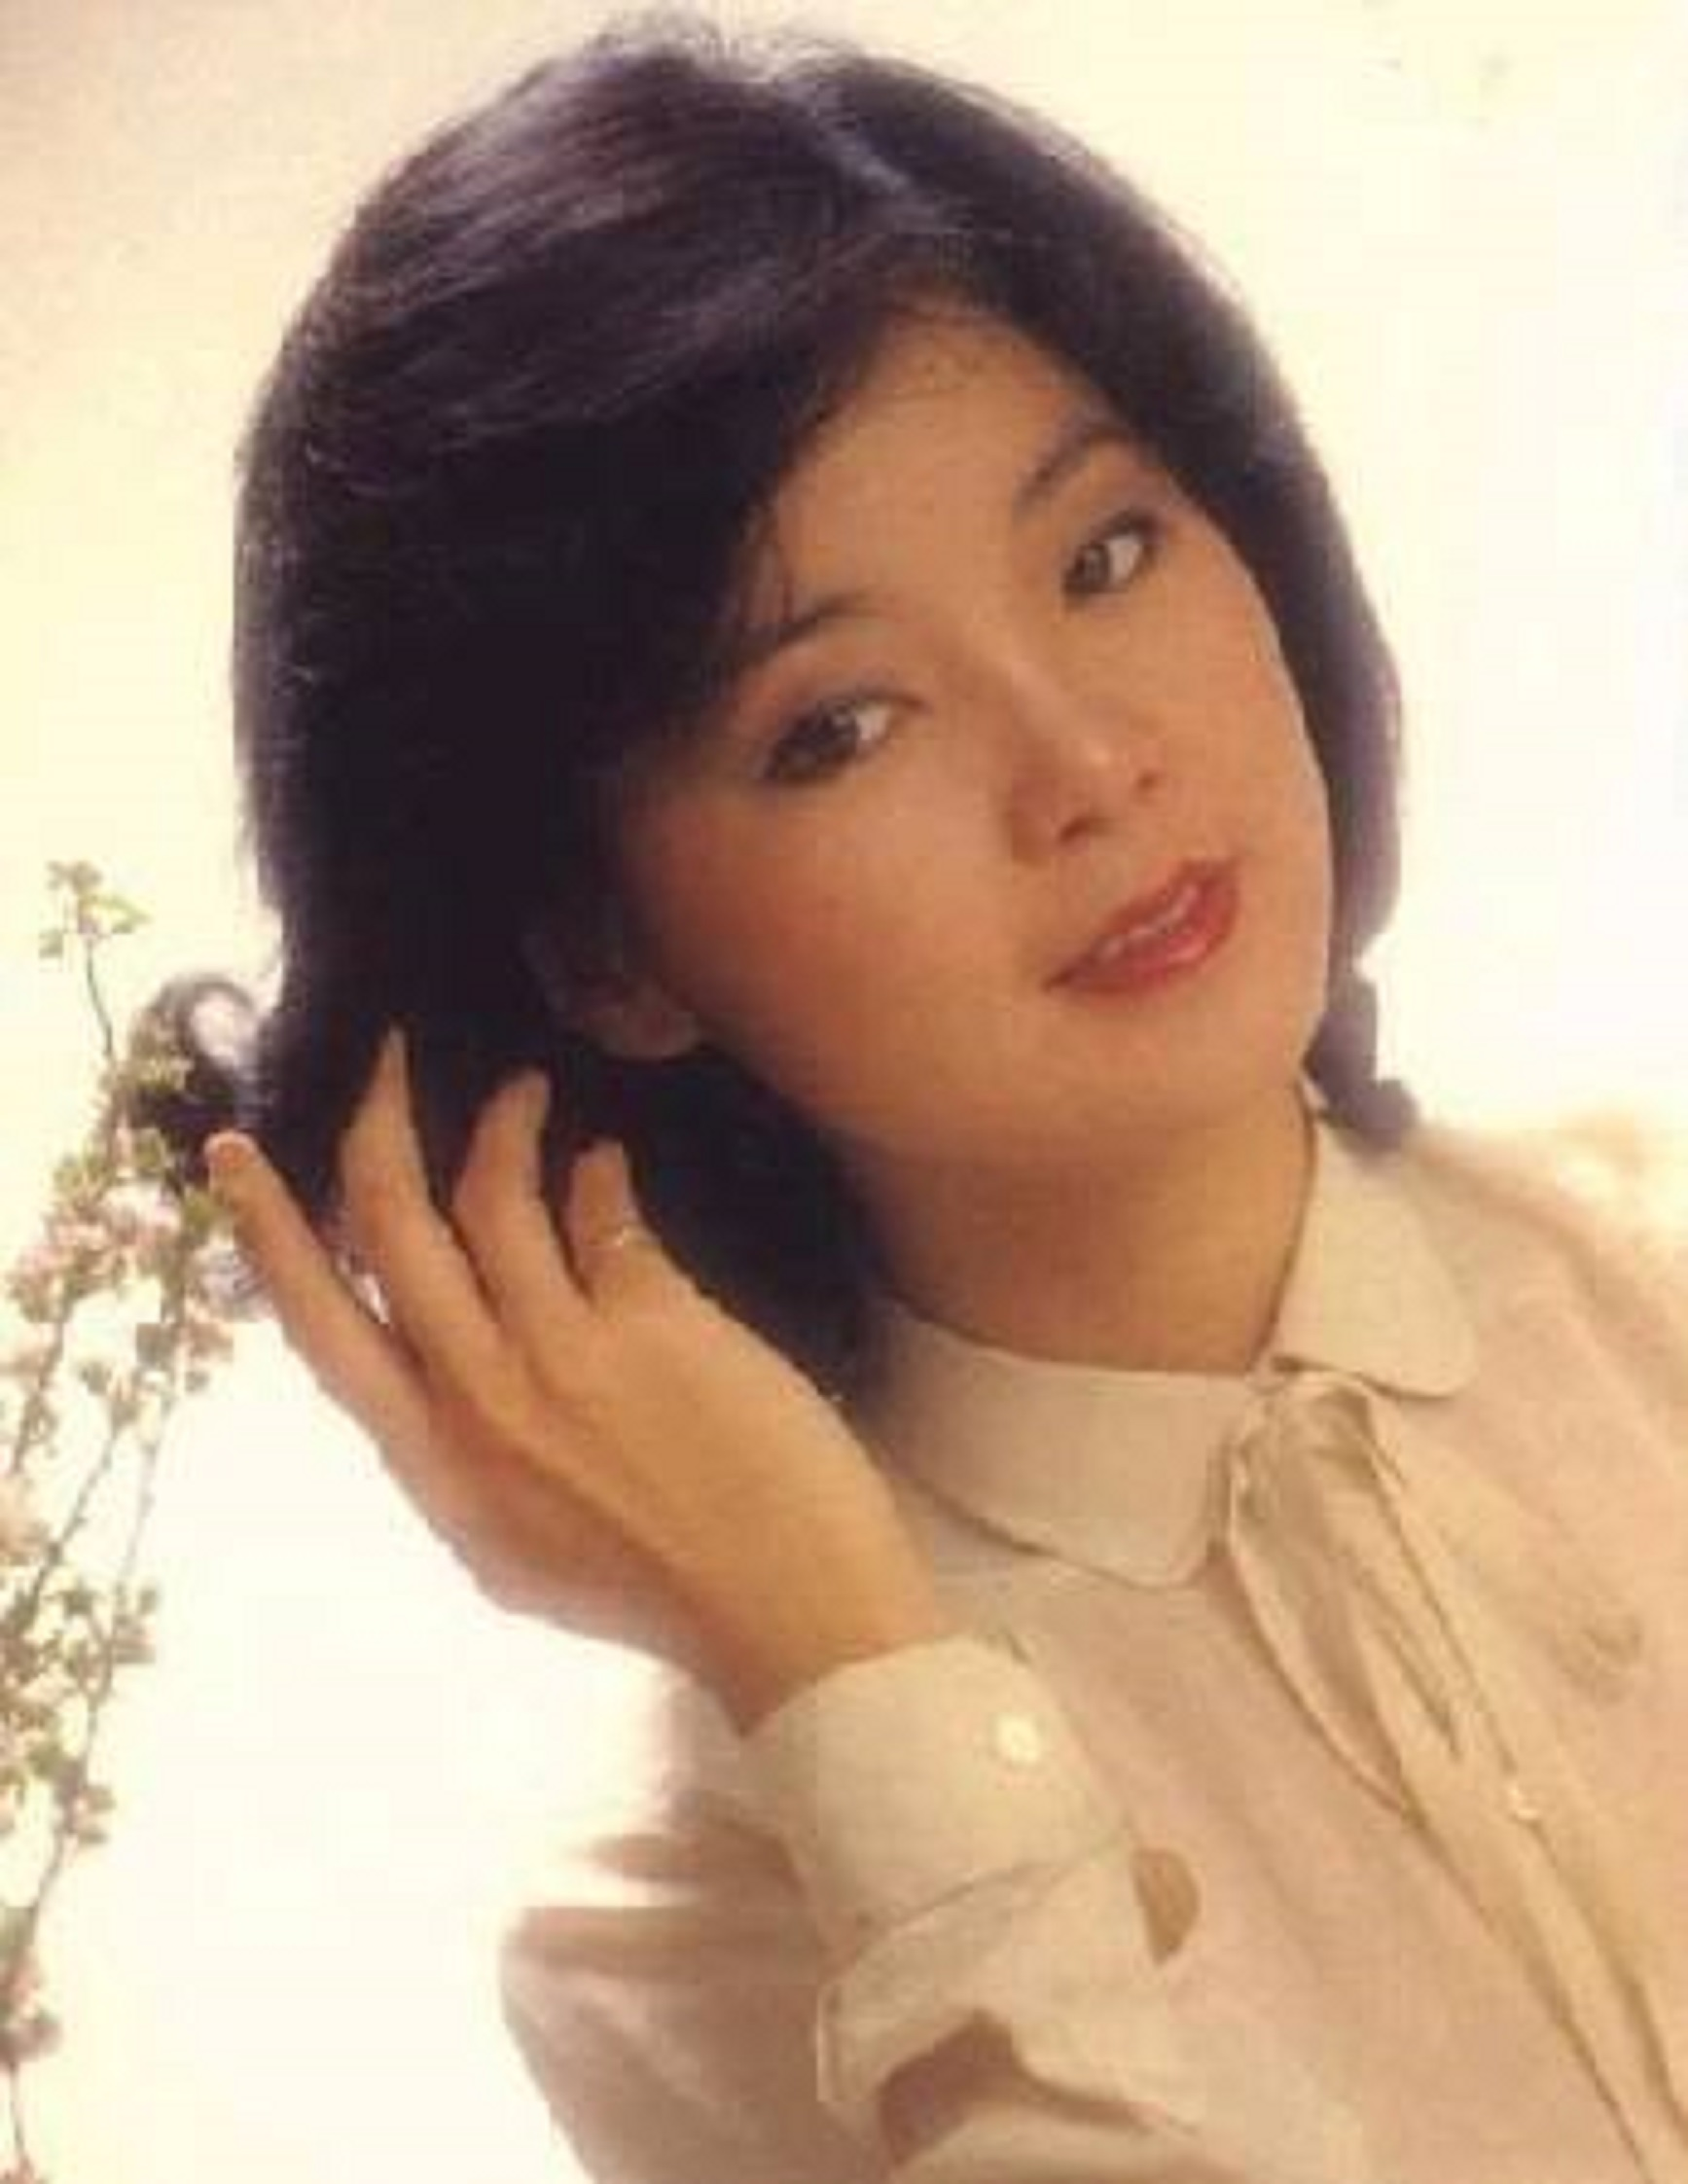 Ke Fou Duo Jian Yi Yan 可否多见一眼 Lyrics 歌詞 With Pinyin By Deng Li Jun 邓丽君 Teresa Teng